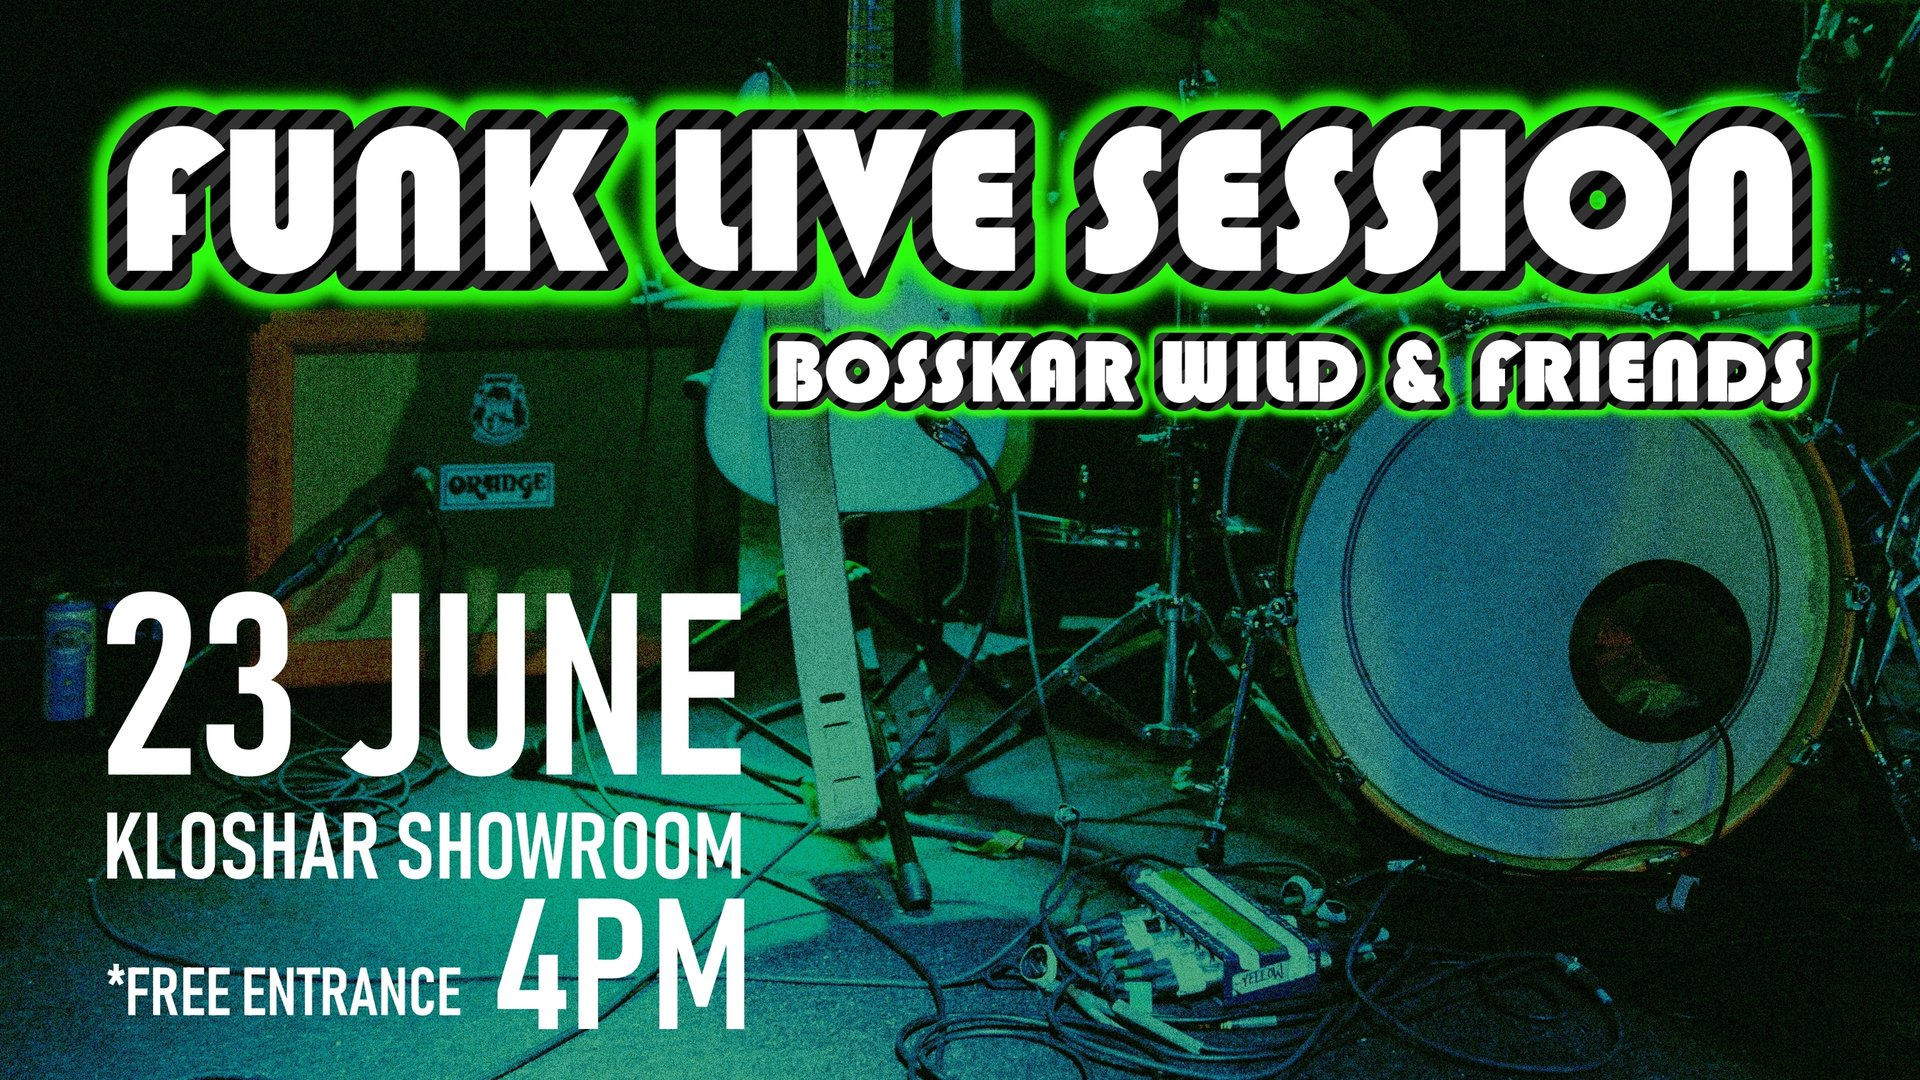 Funk Live Session - Bosskar Wild & Friends at Kloshar Showroom